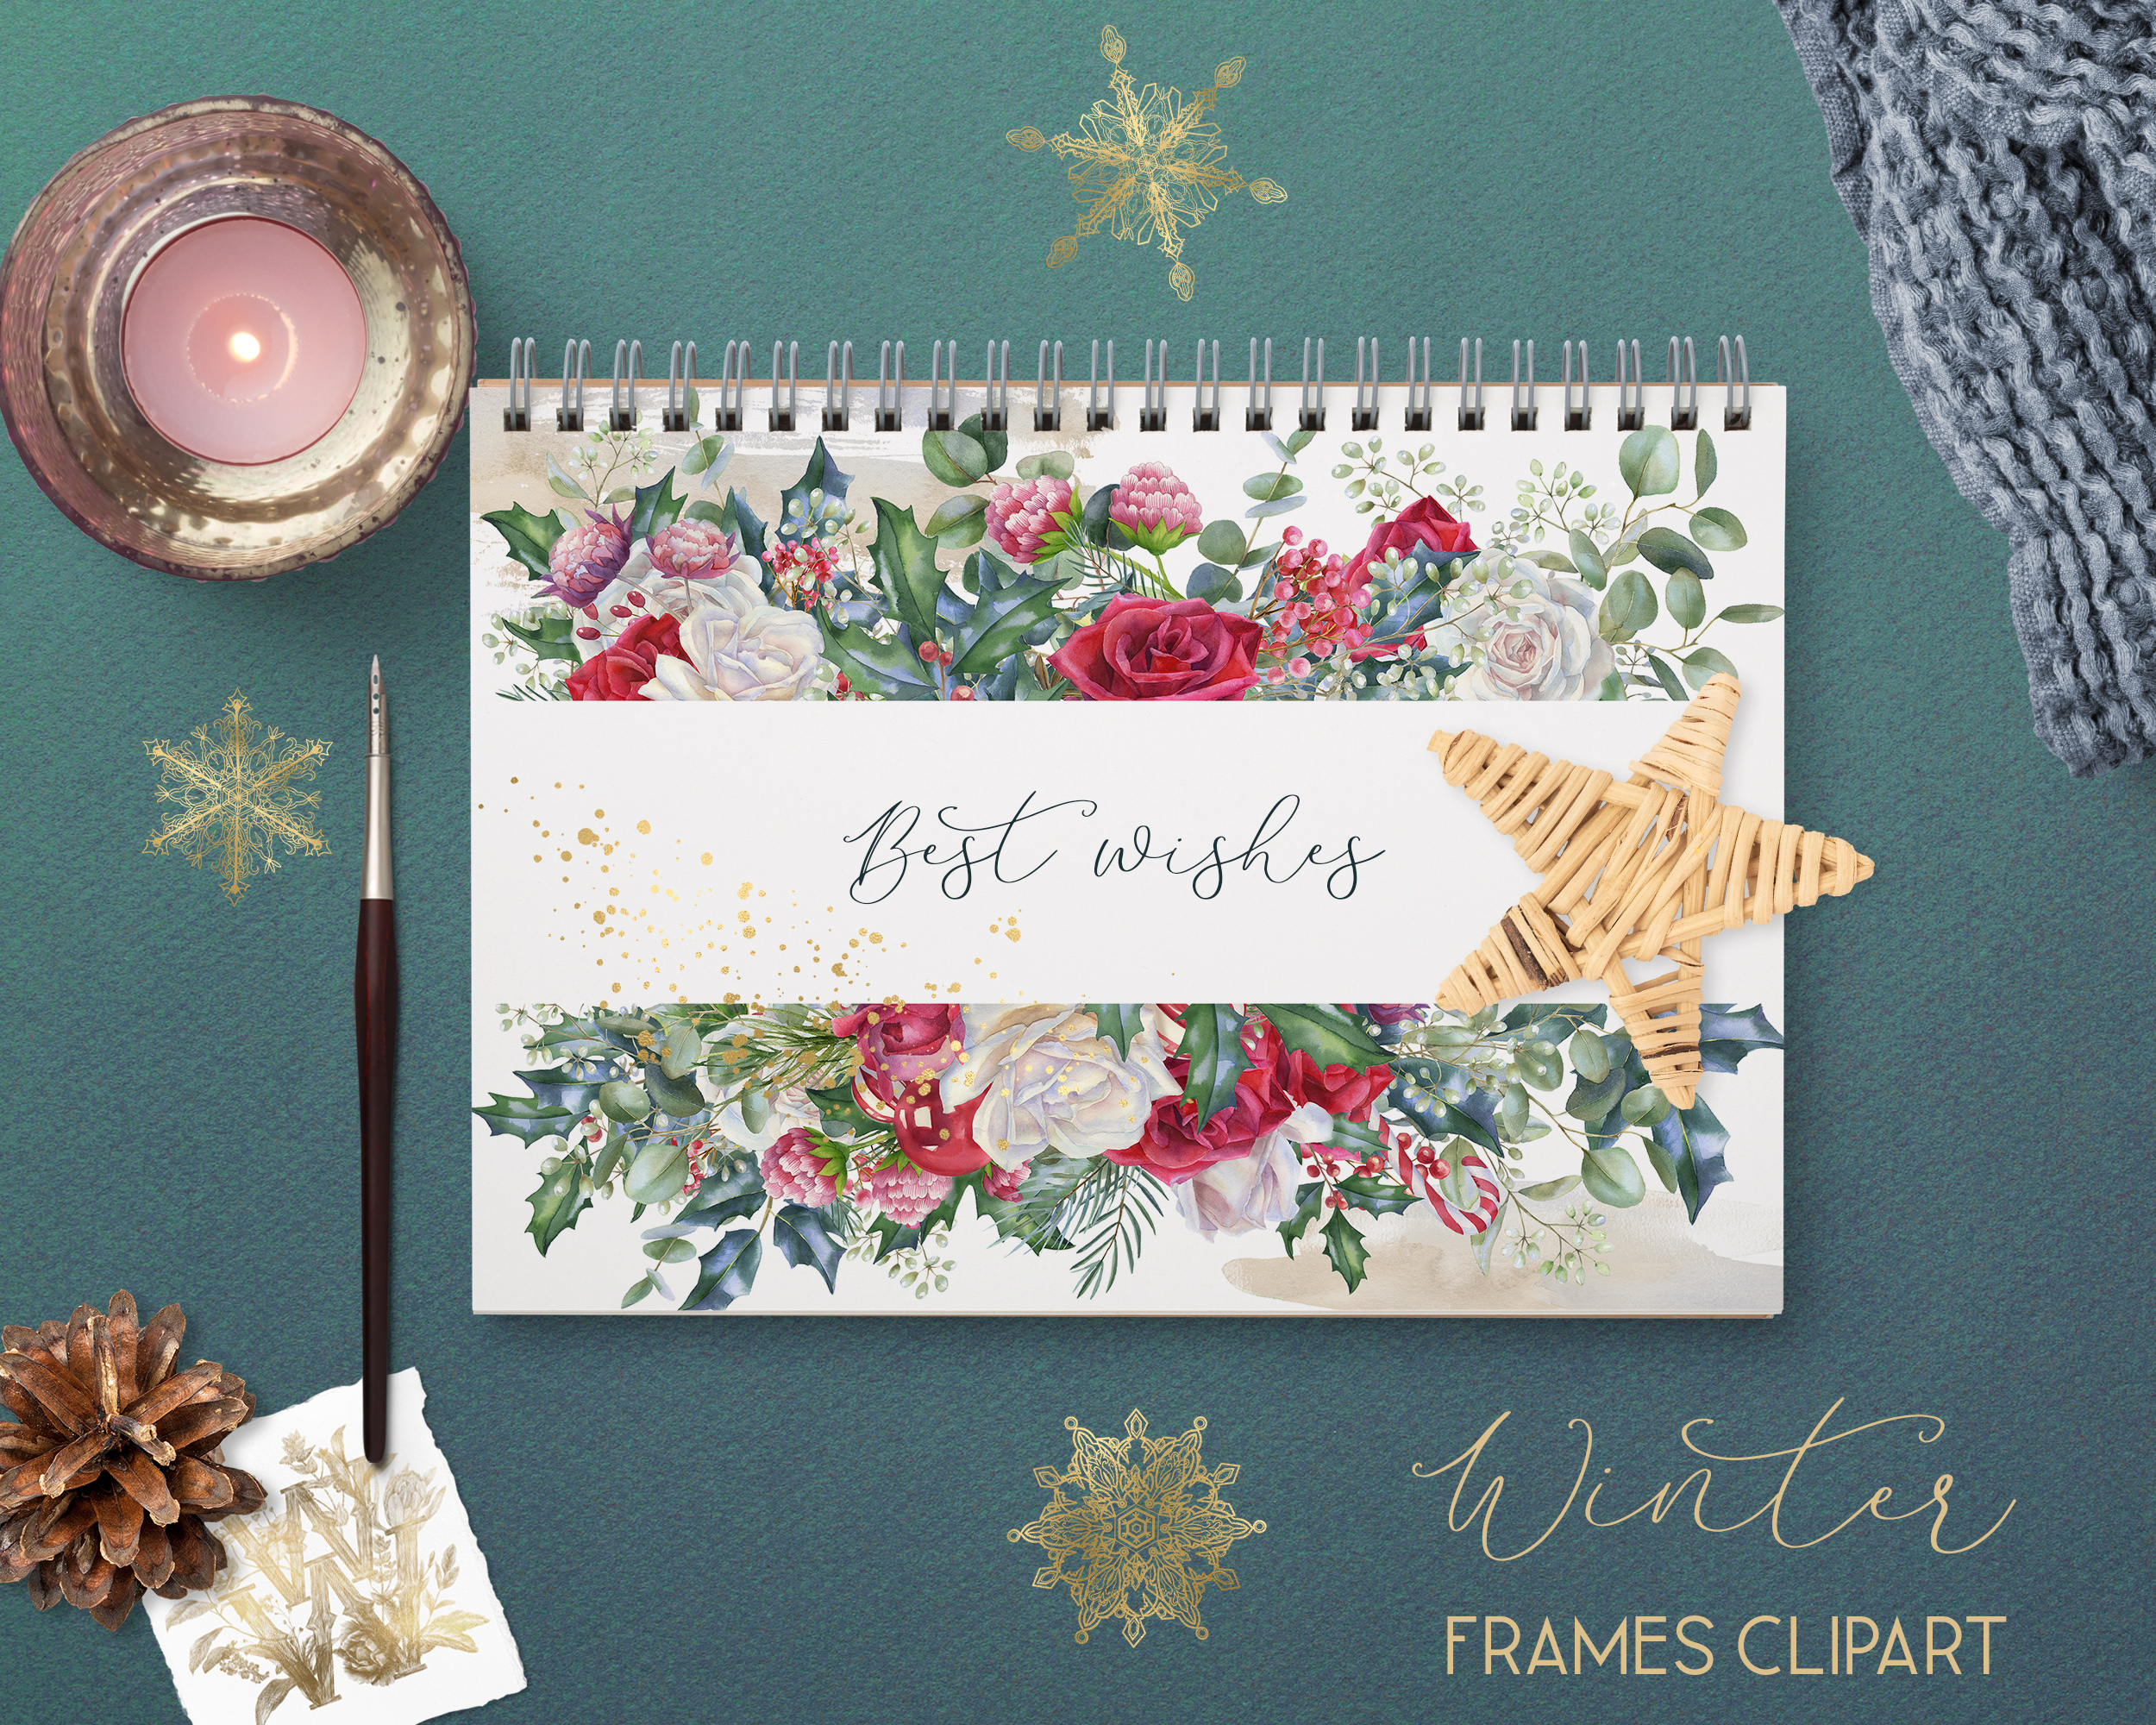 Winter frames clipart, watercolor Christmas borders png example image 7